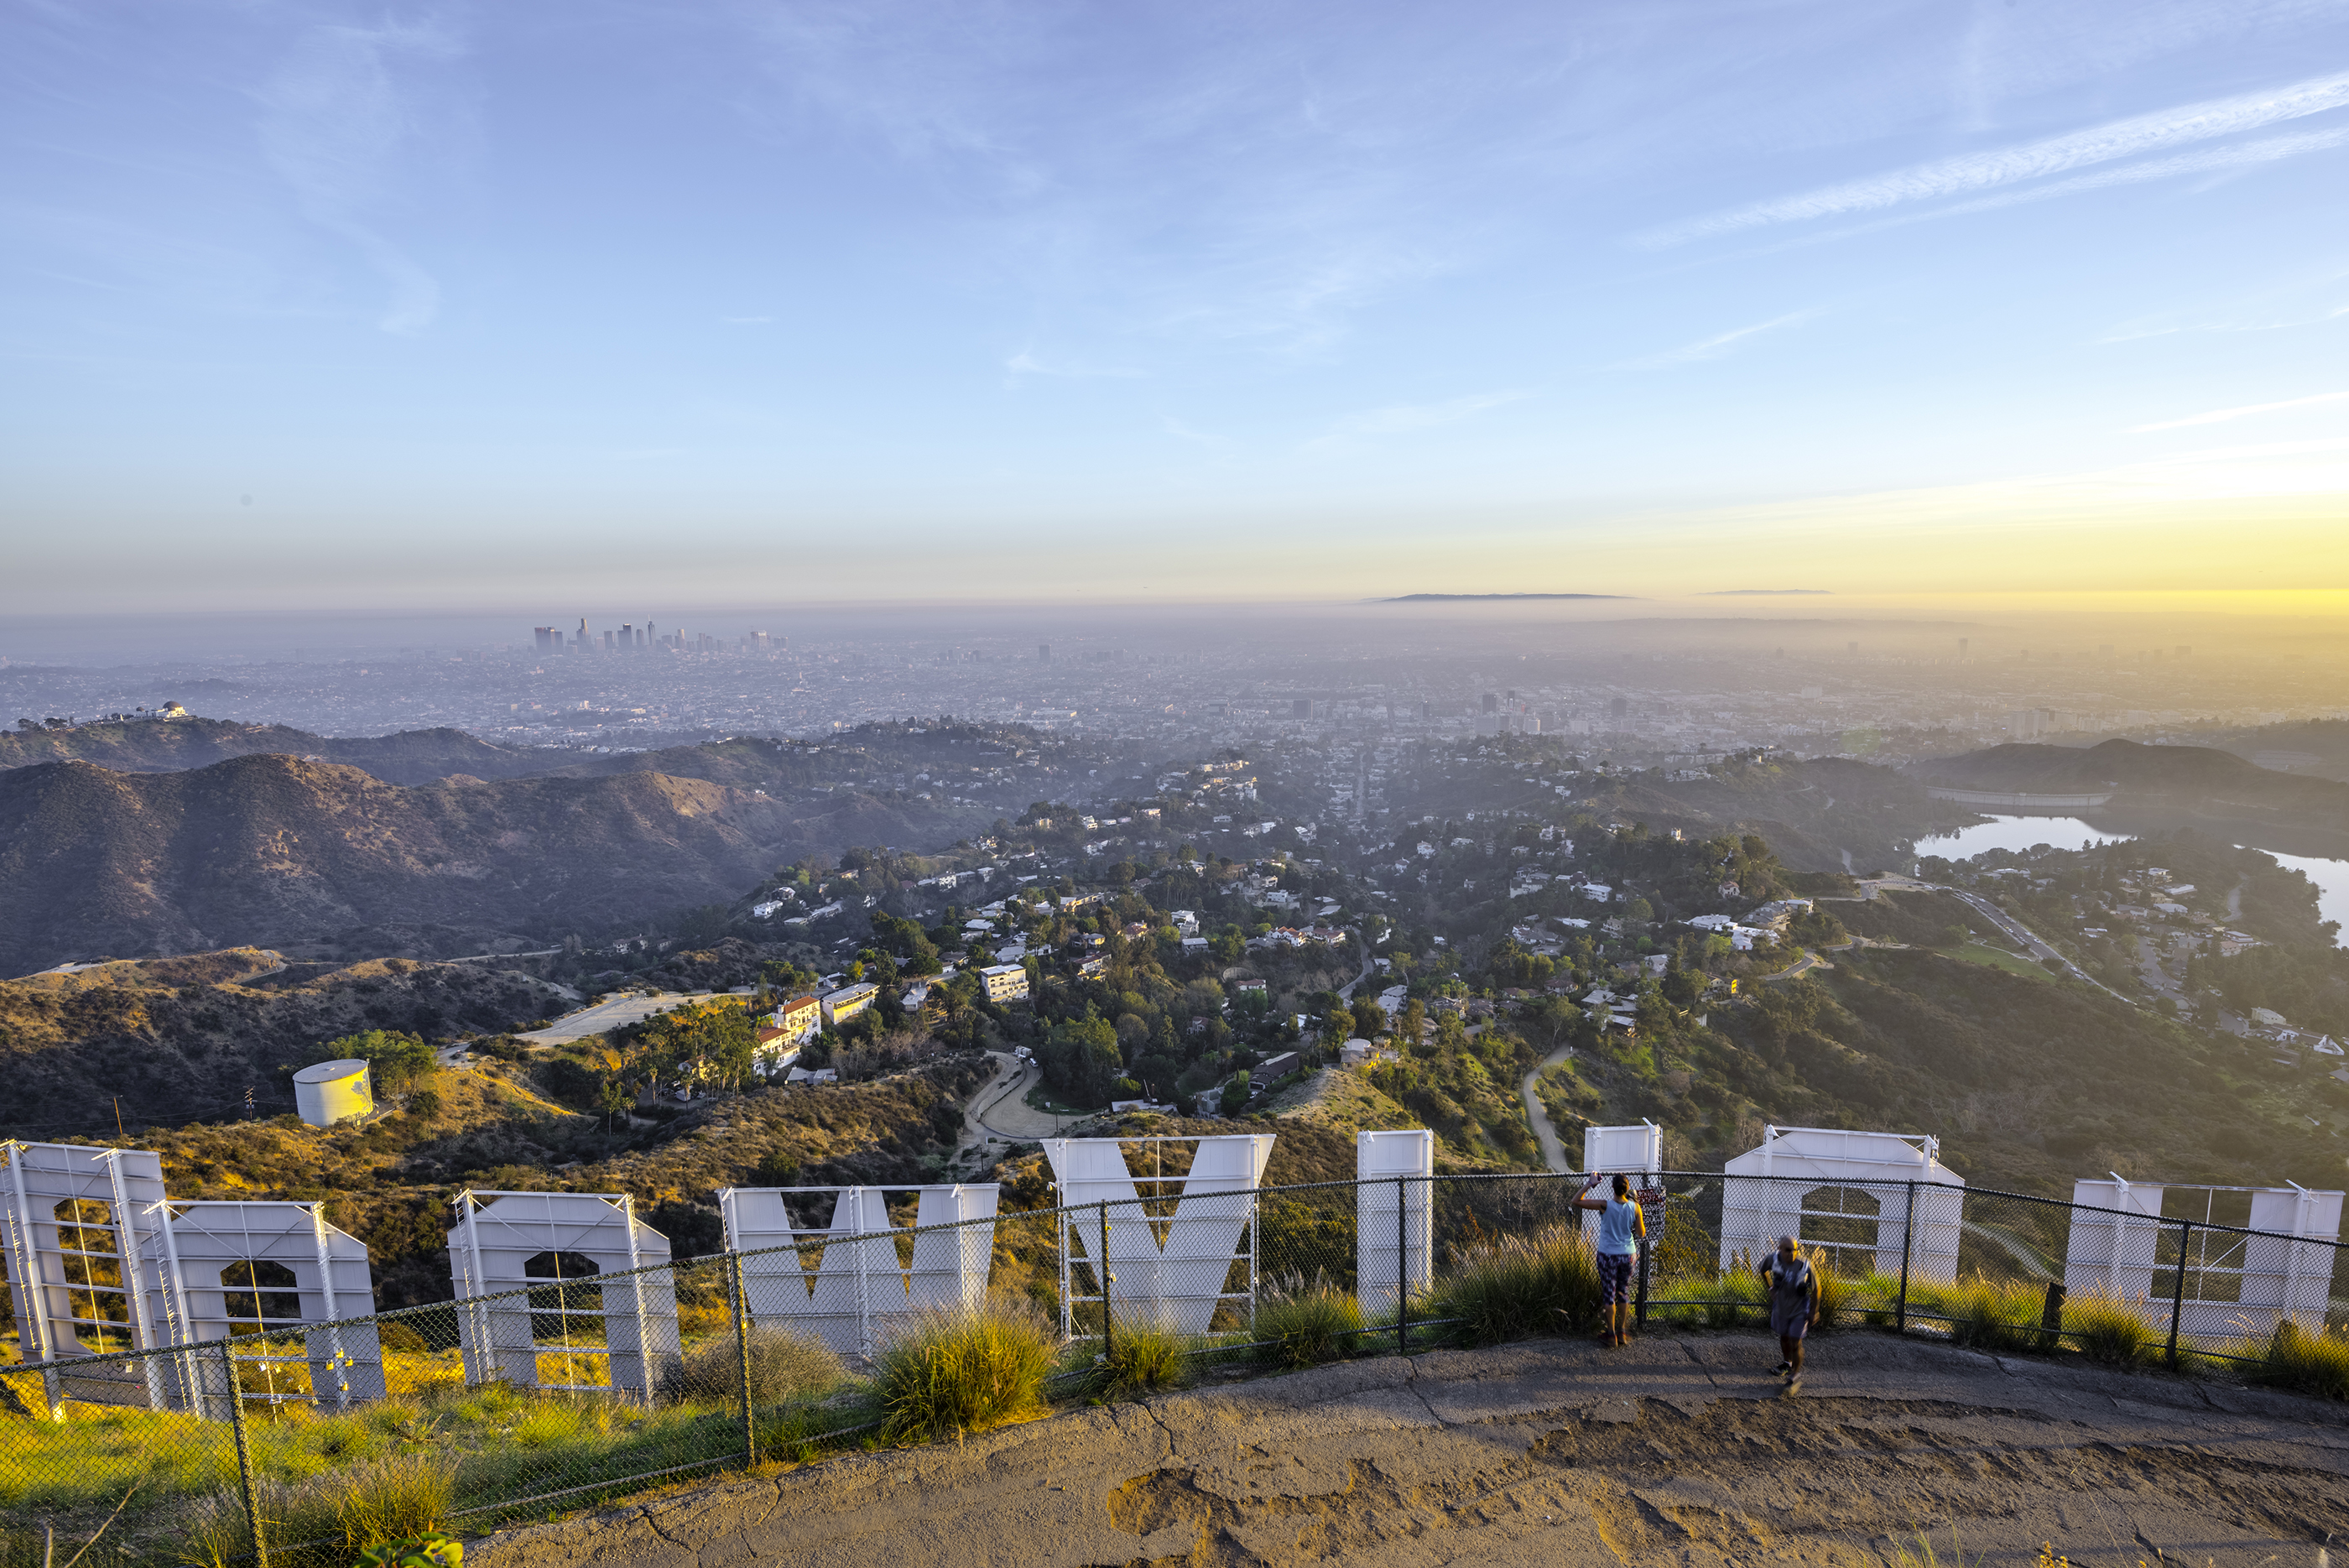 Hollywood Sign and Los Angeles looking from behind